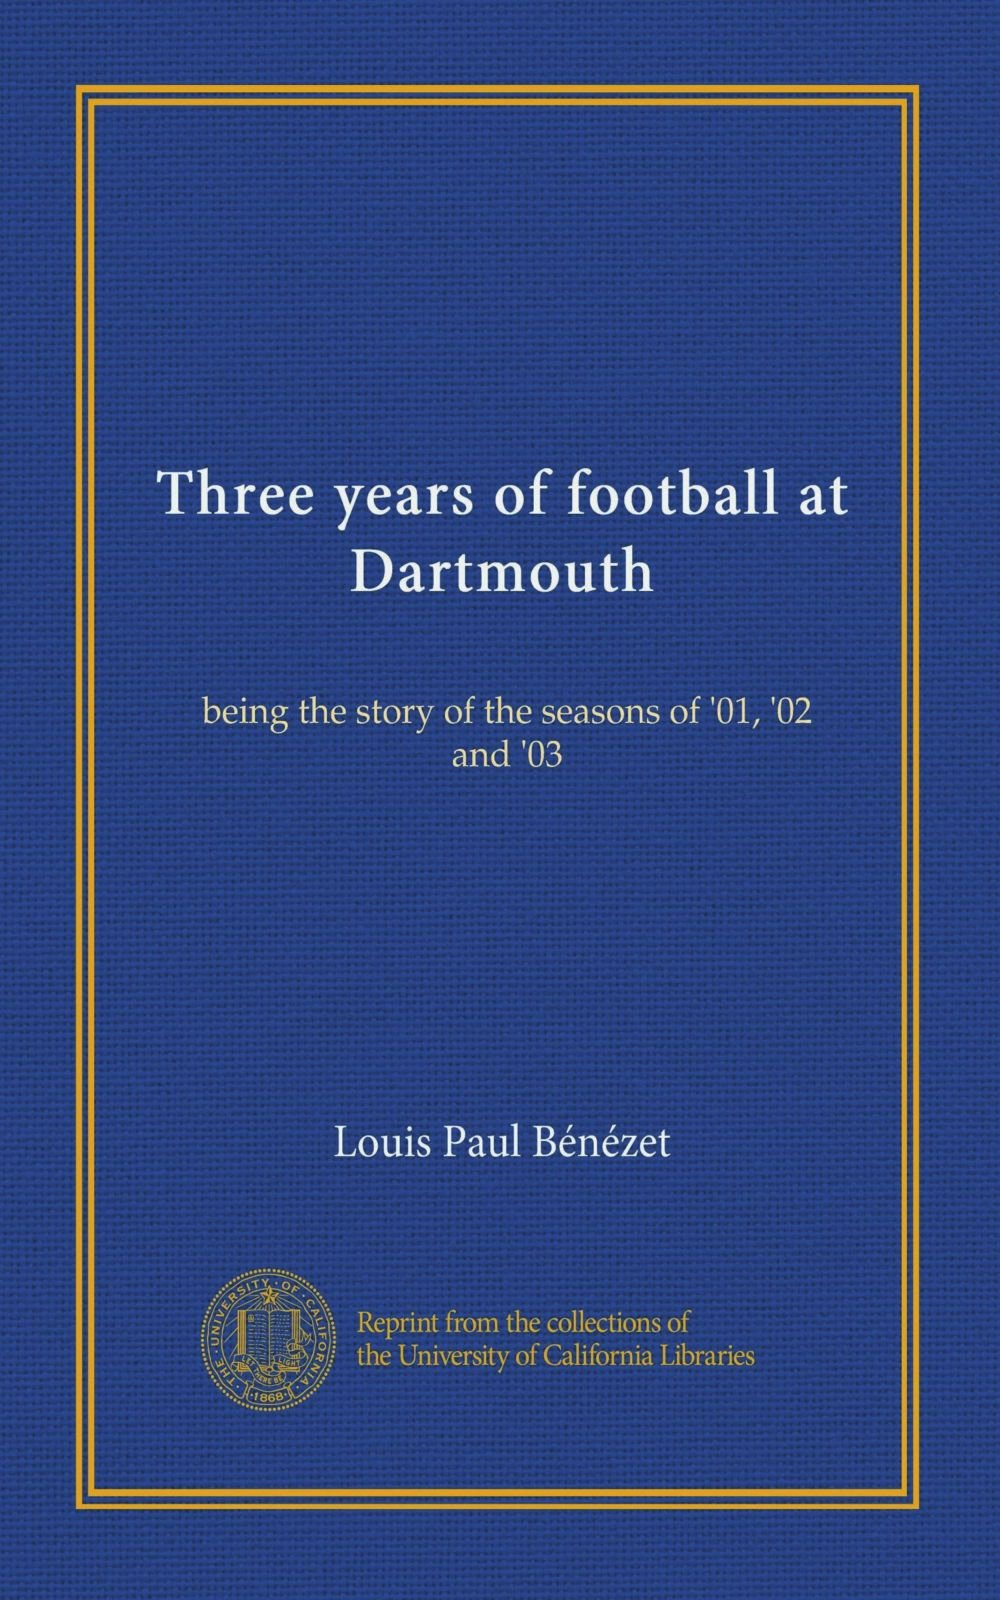 Download Three years of football at Dartmouth: being the story of the seasons of '01, '02 and '03 pdf